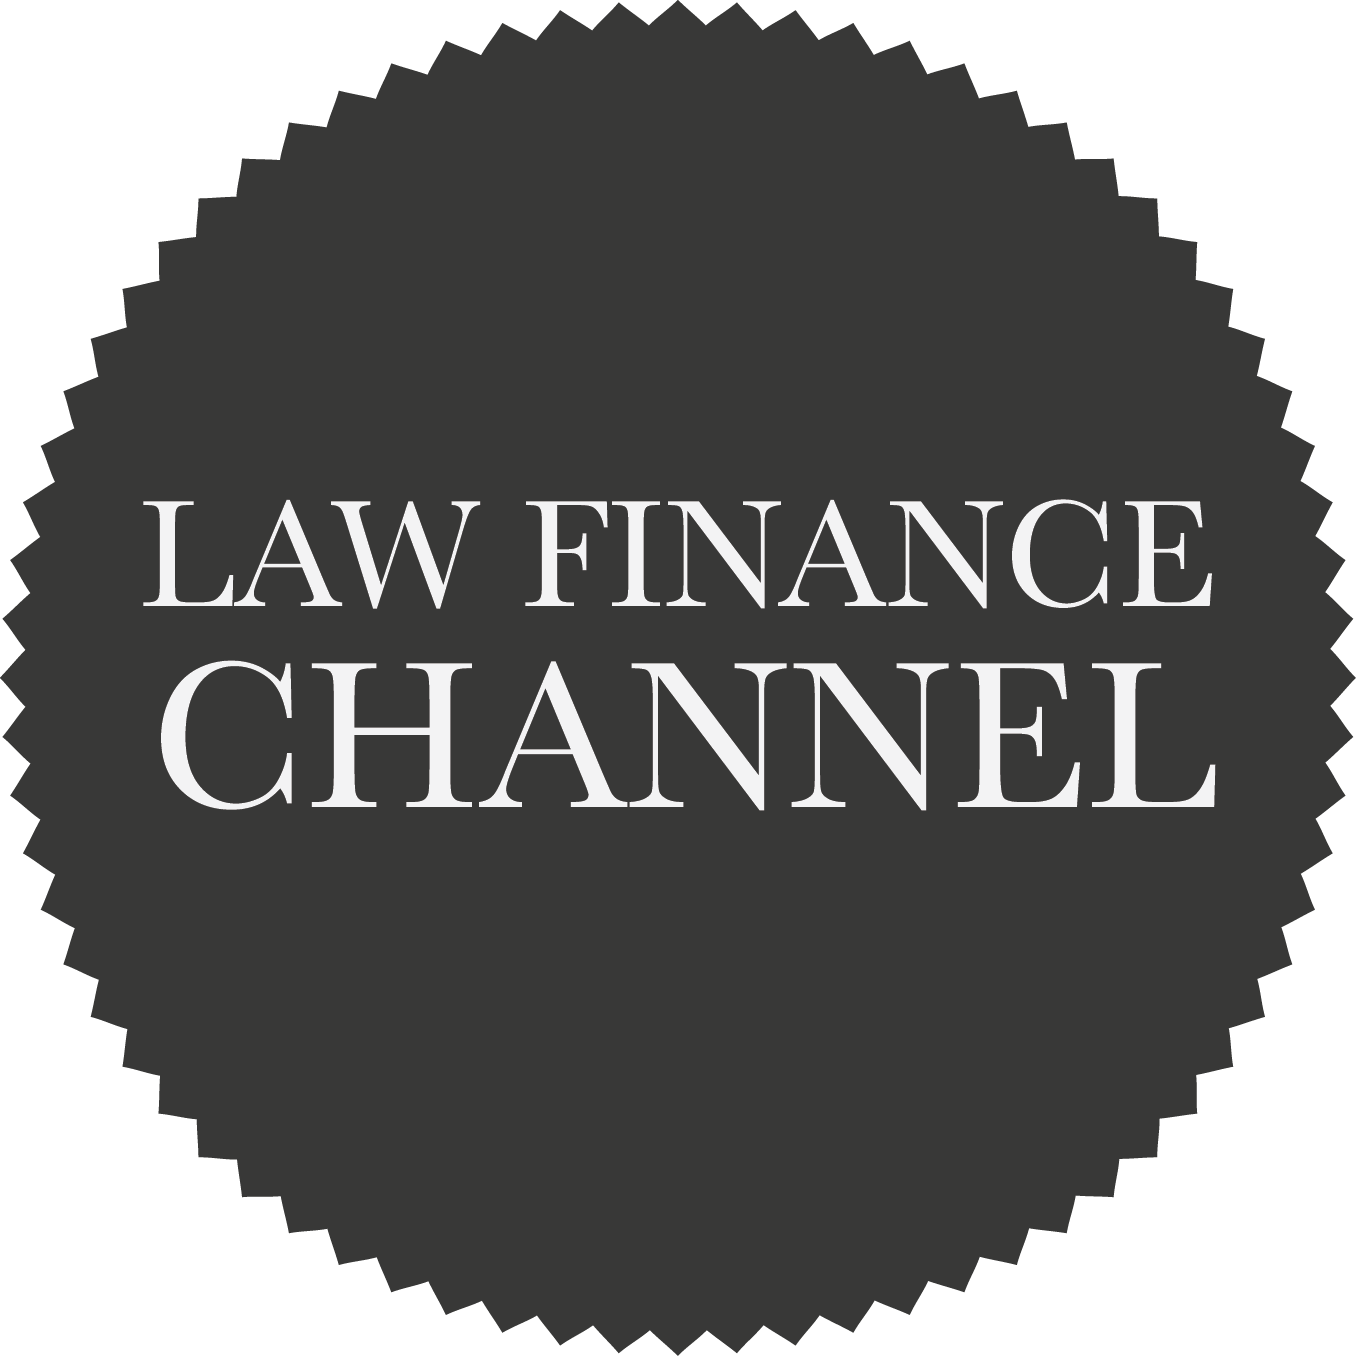 law finance channel badge.png